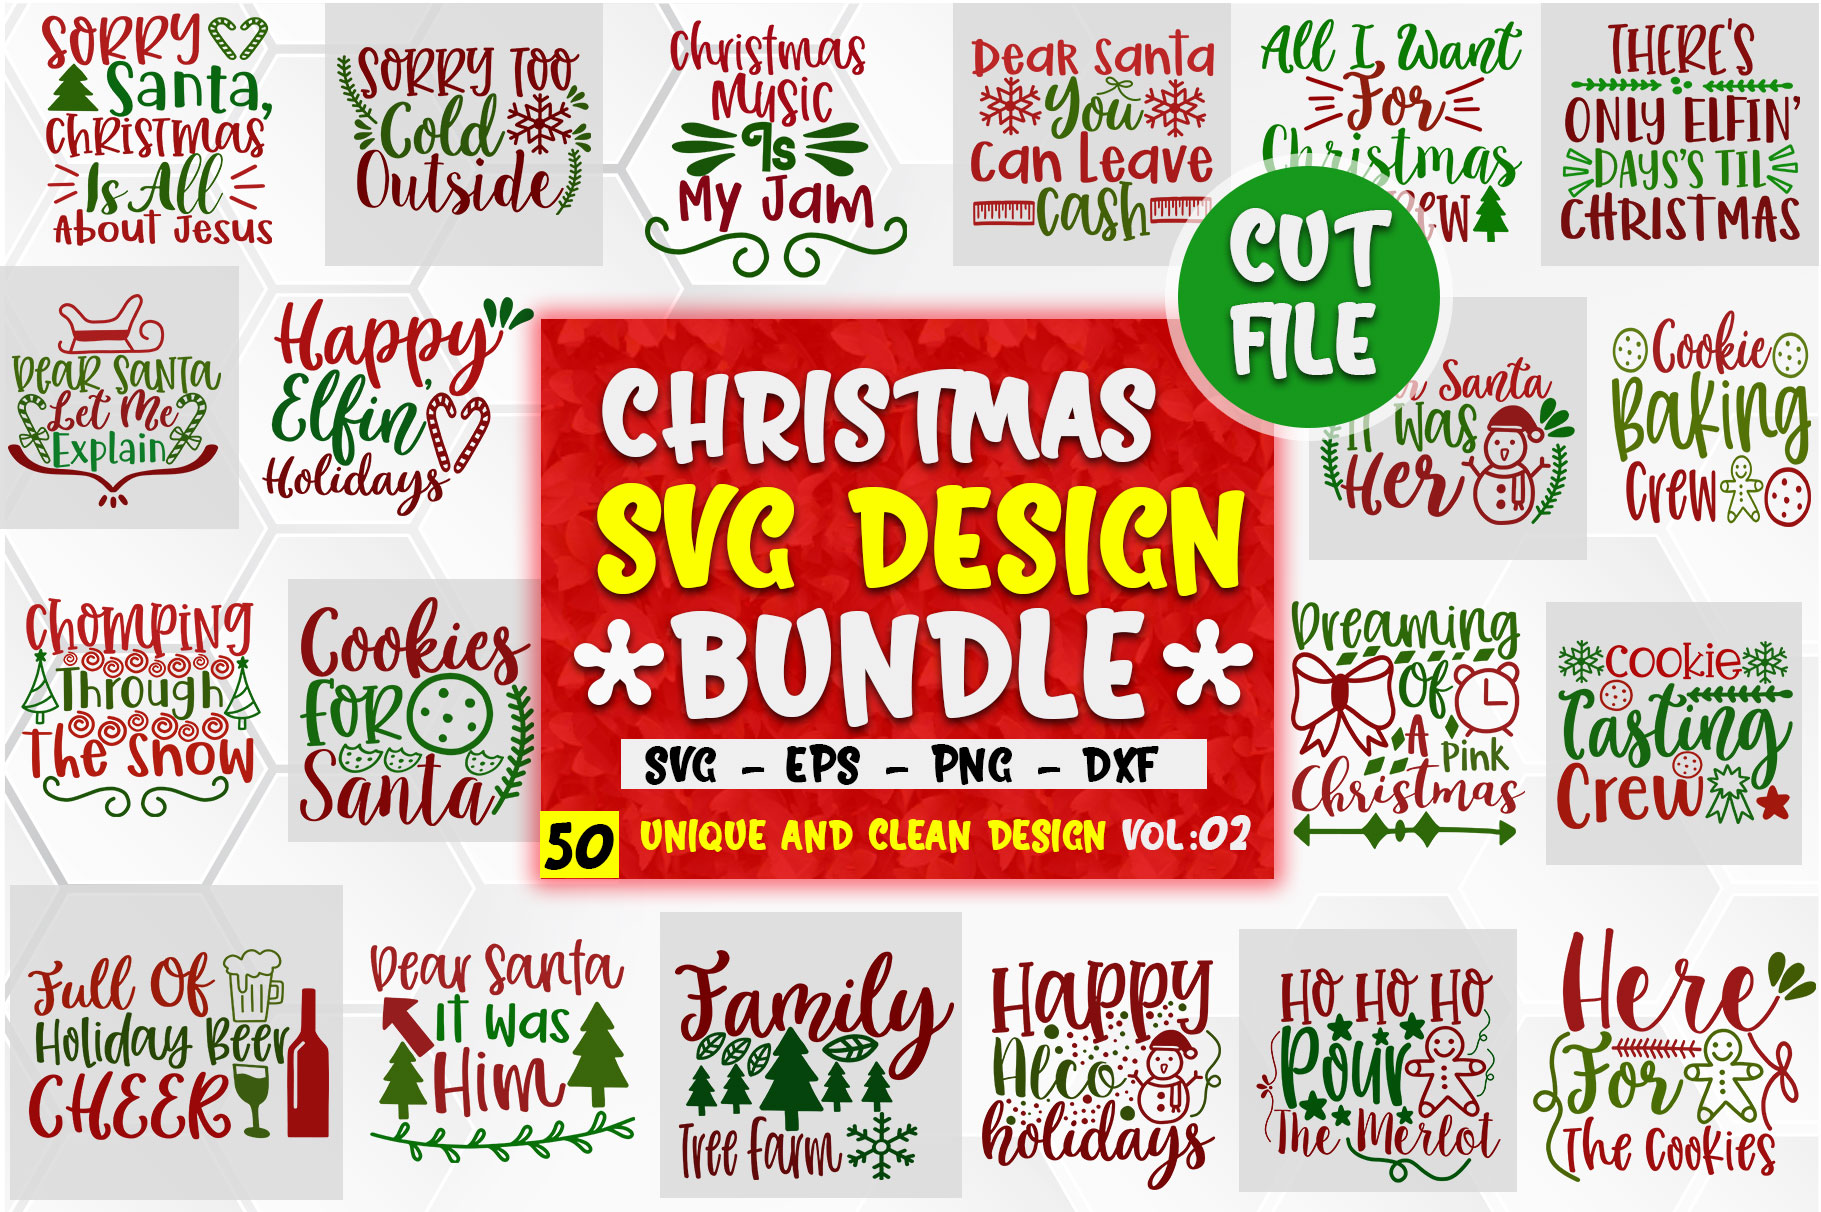 Download Free Christmas Design Big Bundle Vol 2 Graphic By Orindesign SVG Cut Files